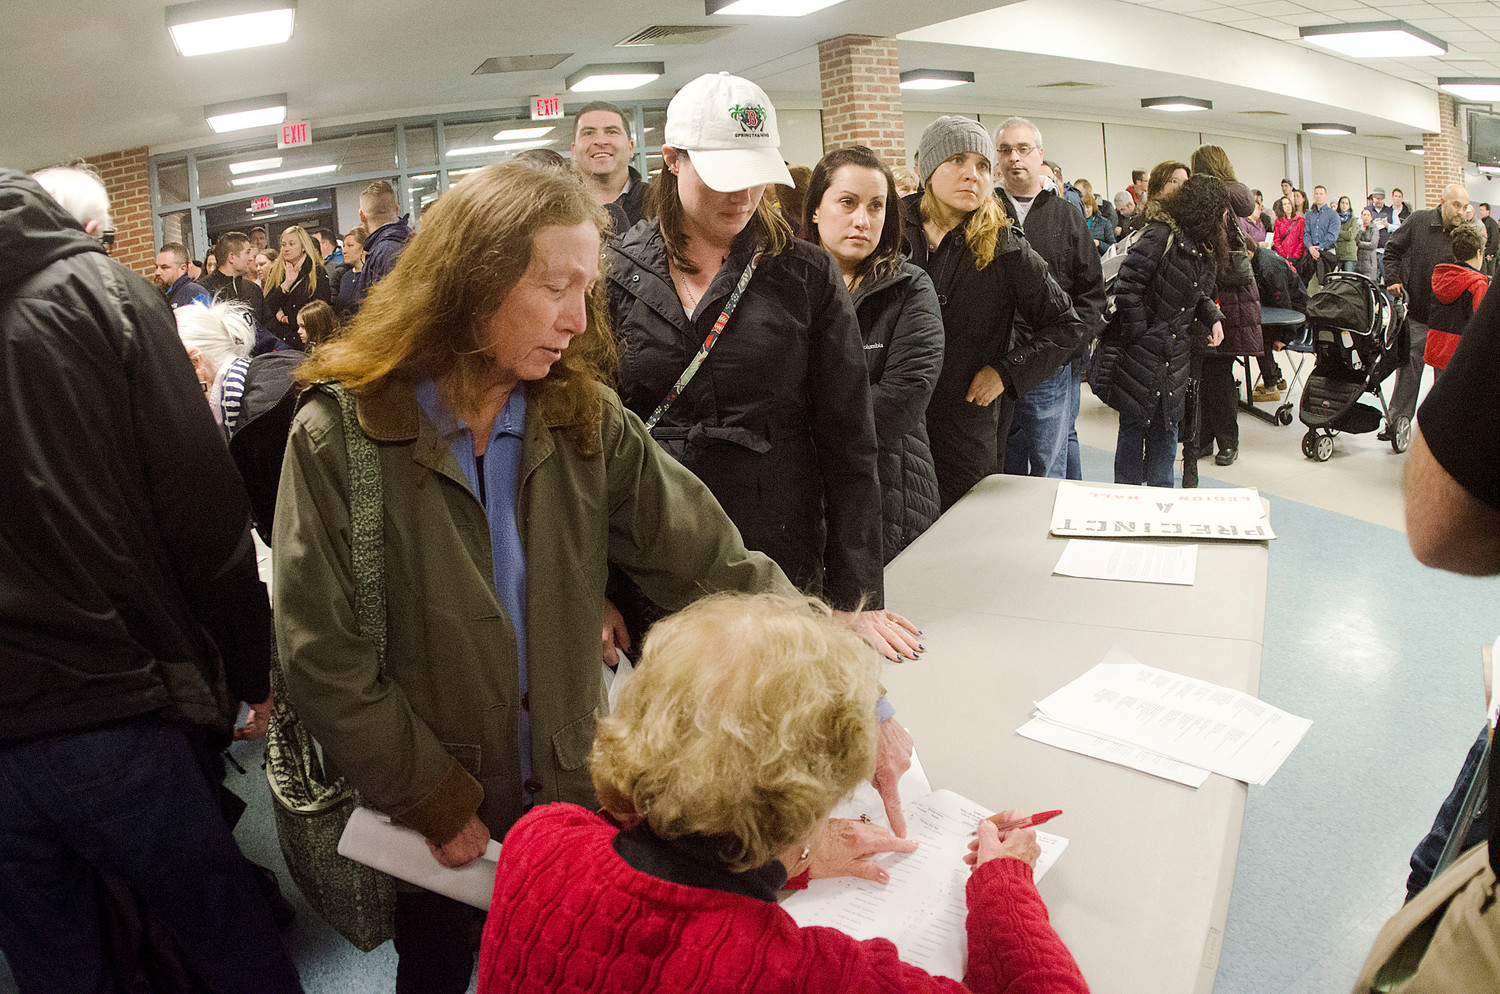 Kathleen Cummings (left) signs in before the meeting. It took over an hour to sign in the 1000 plus voters.